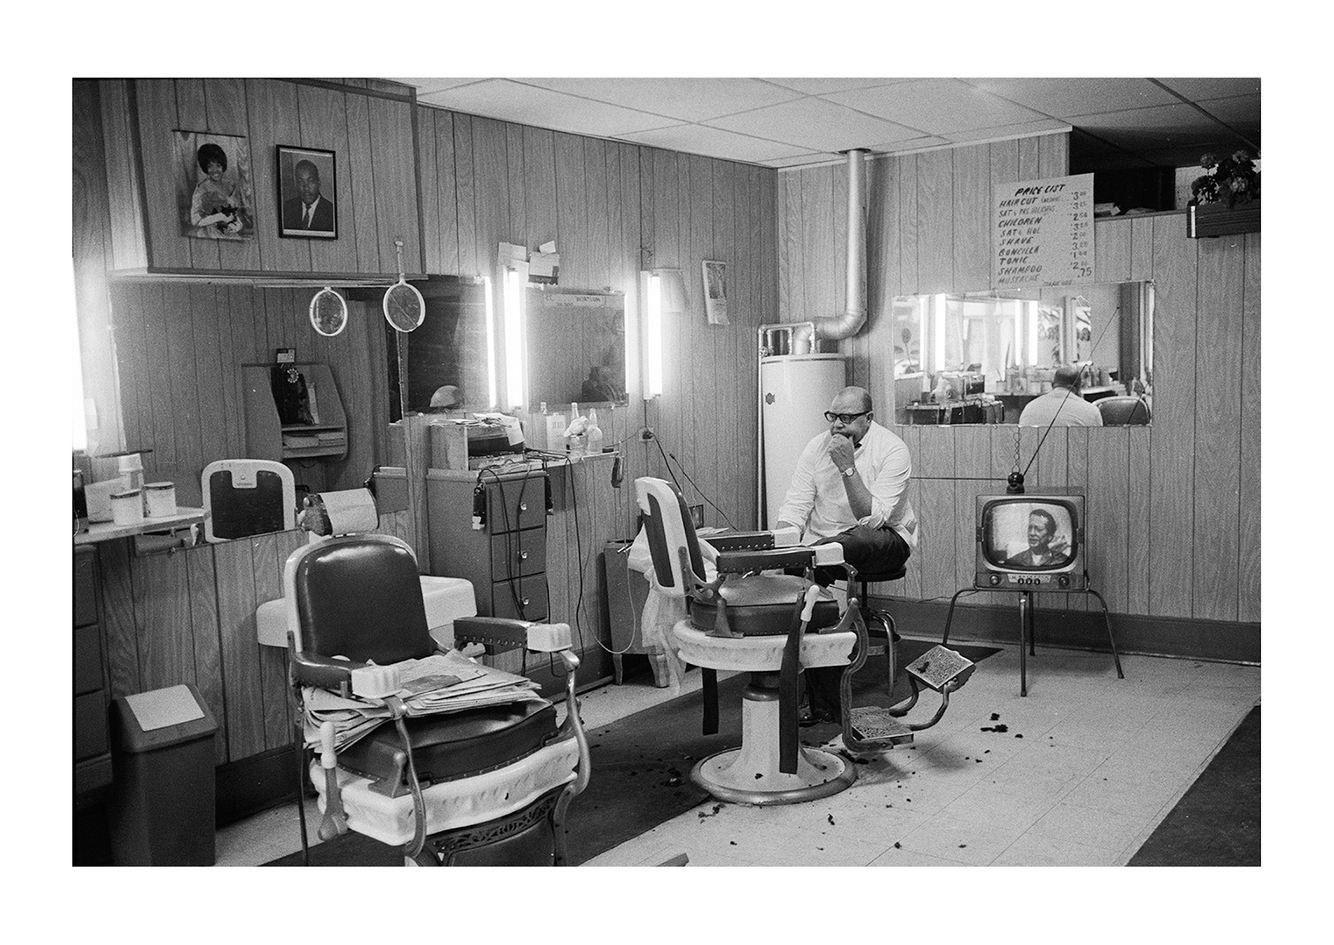 Joe, Joe's Barbershop, 7704 Oakland, Detroit 1972